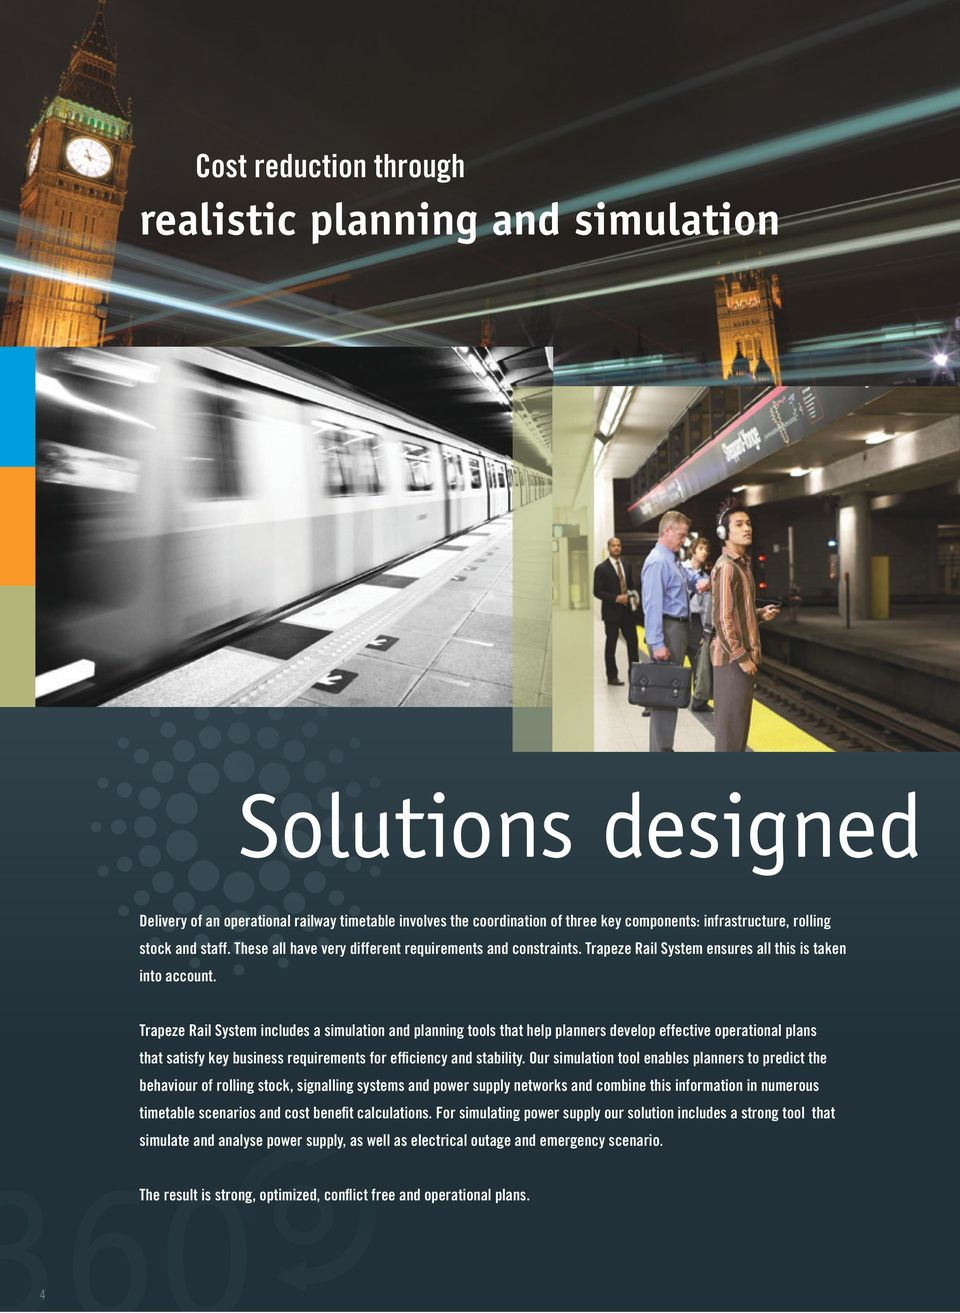 Trapeze Rail System includes a simulation and planning tools that help planners develop effective operational plans that satisfy key business requirements for efficiency and stability.